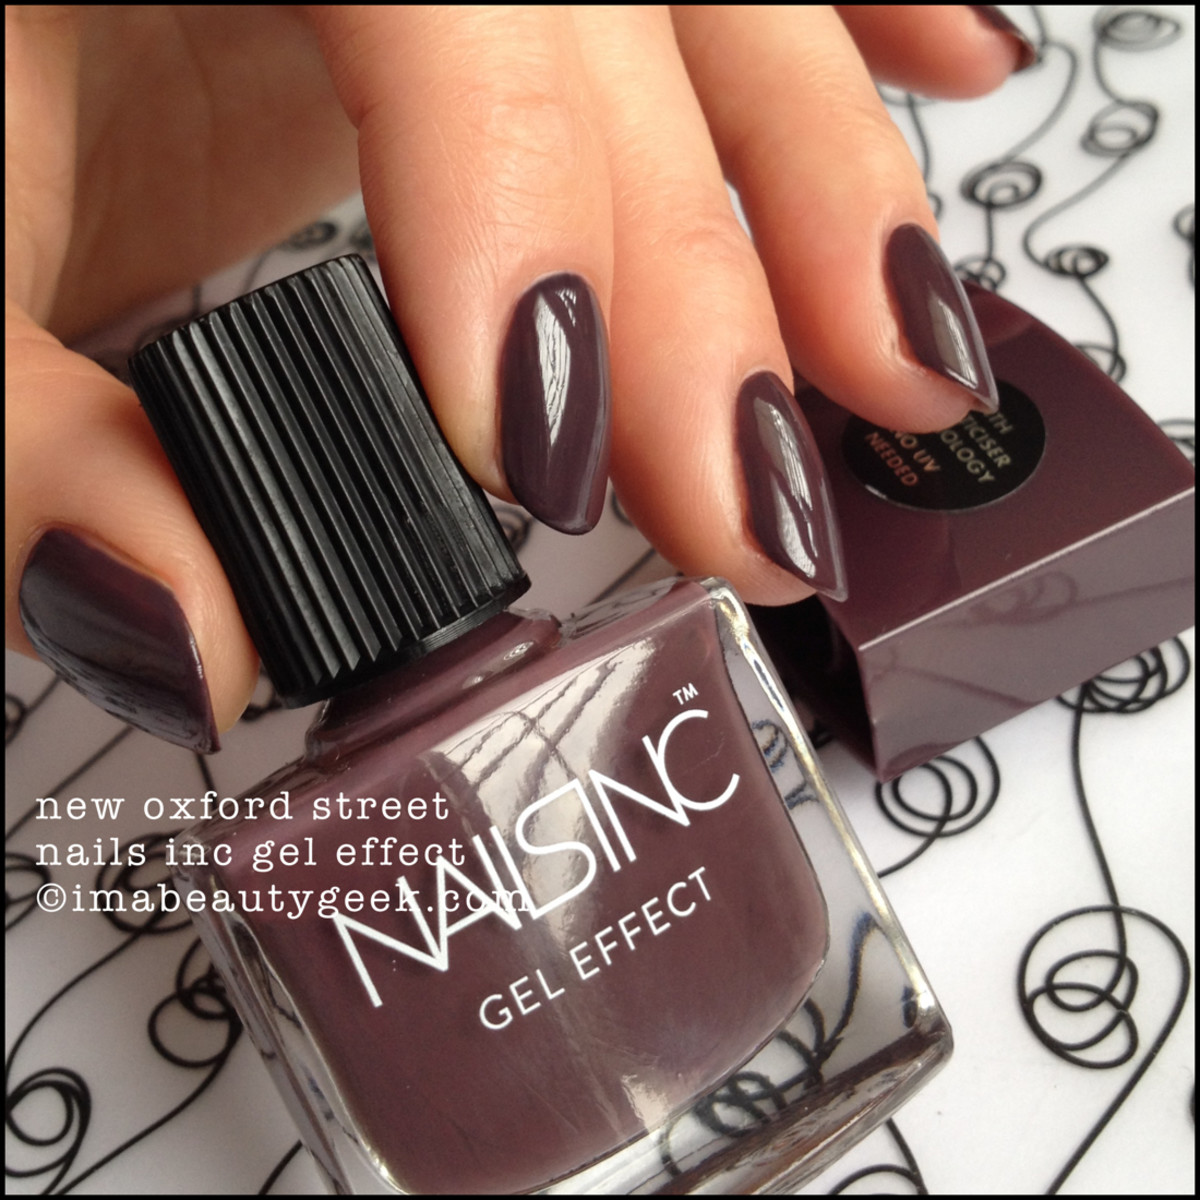 Nails Inc New Oxford Street Gel Effect Nail Polish ManiGeek Swatch